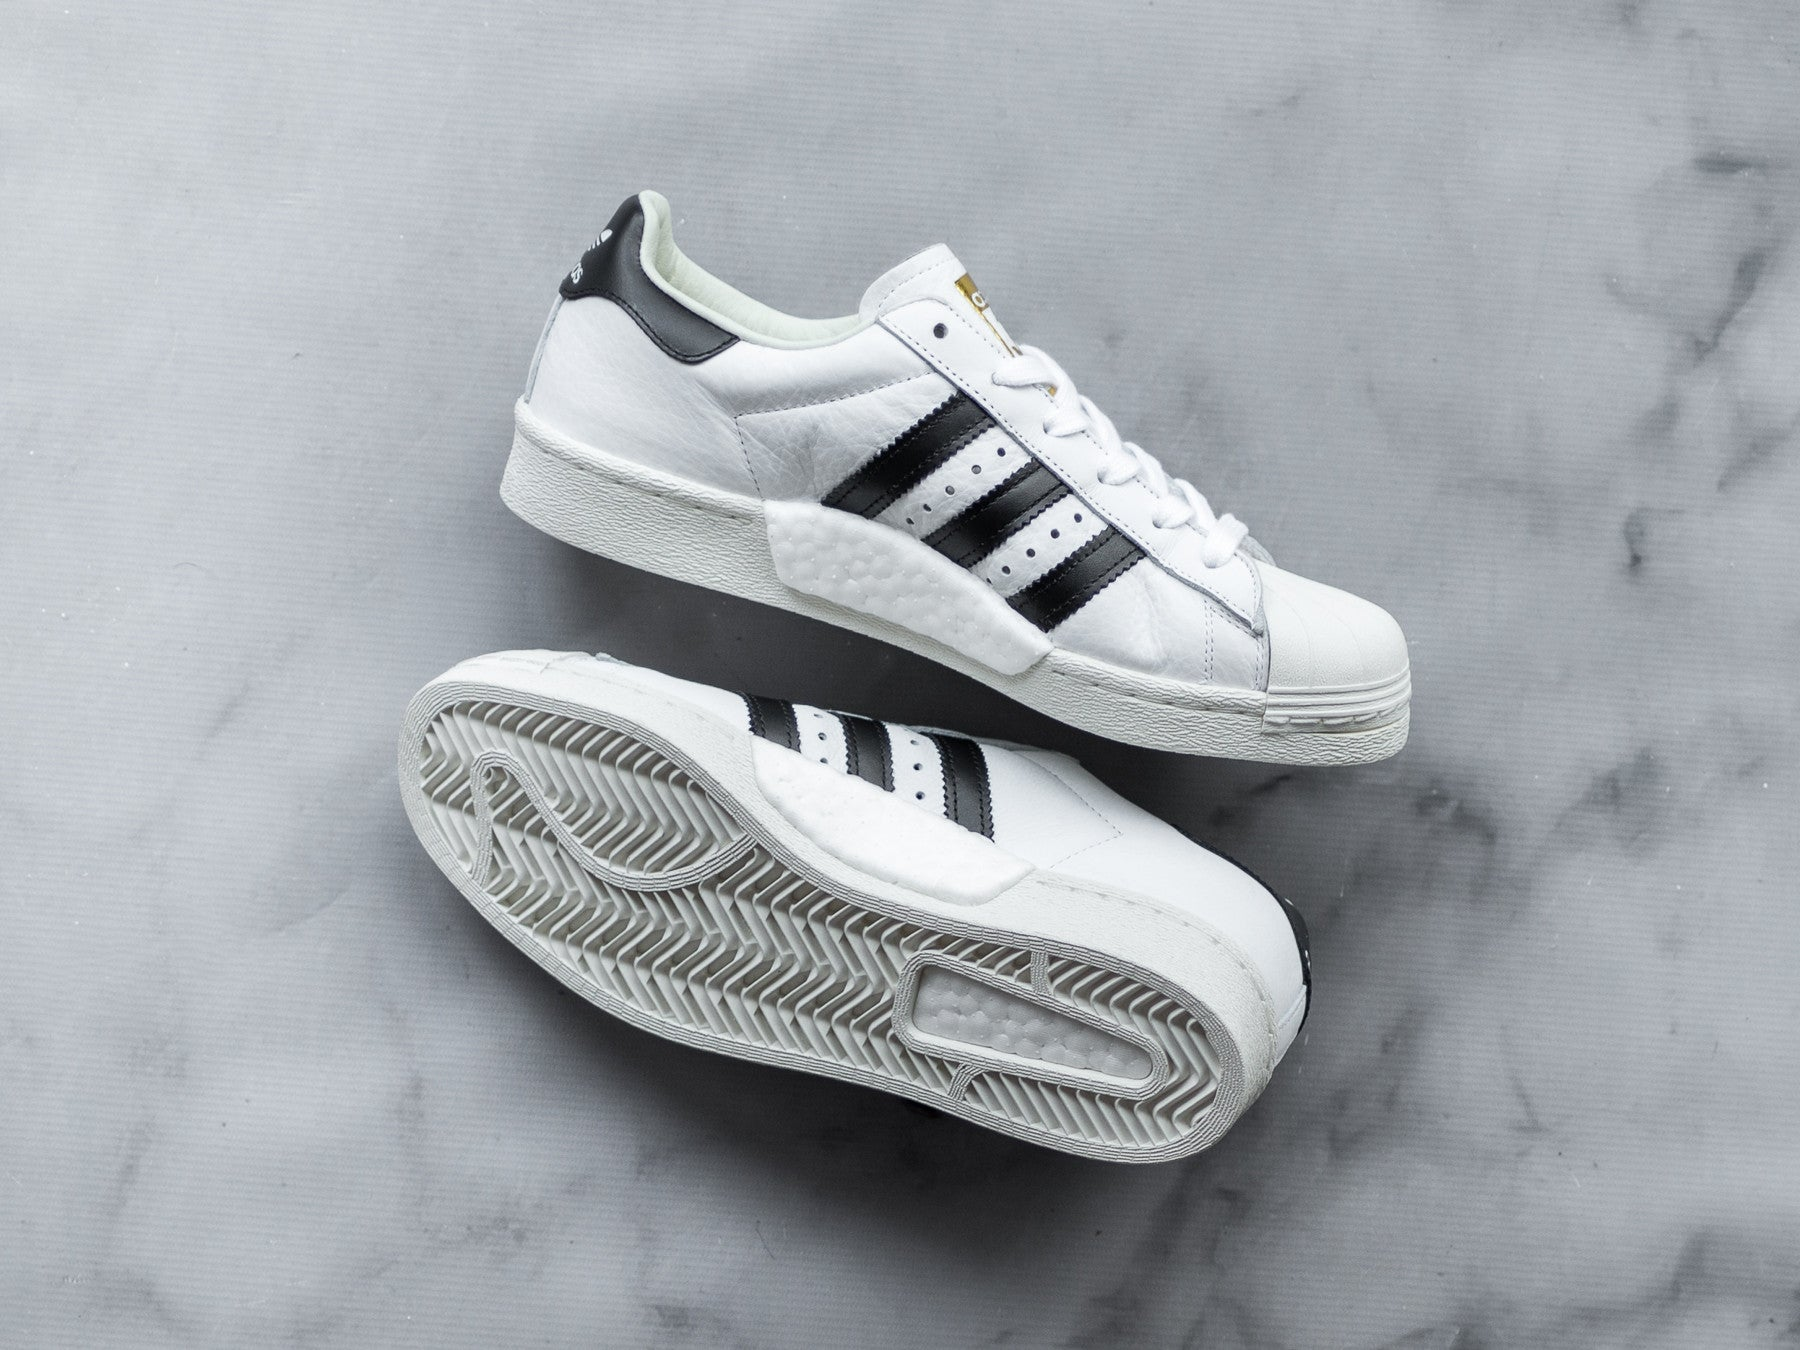 Introducing the adidas Originals Superstar